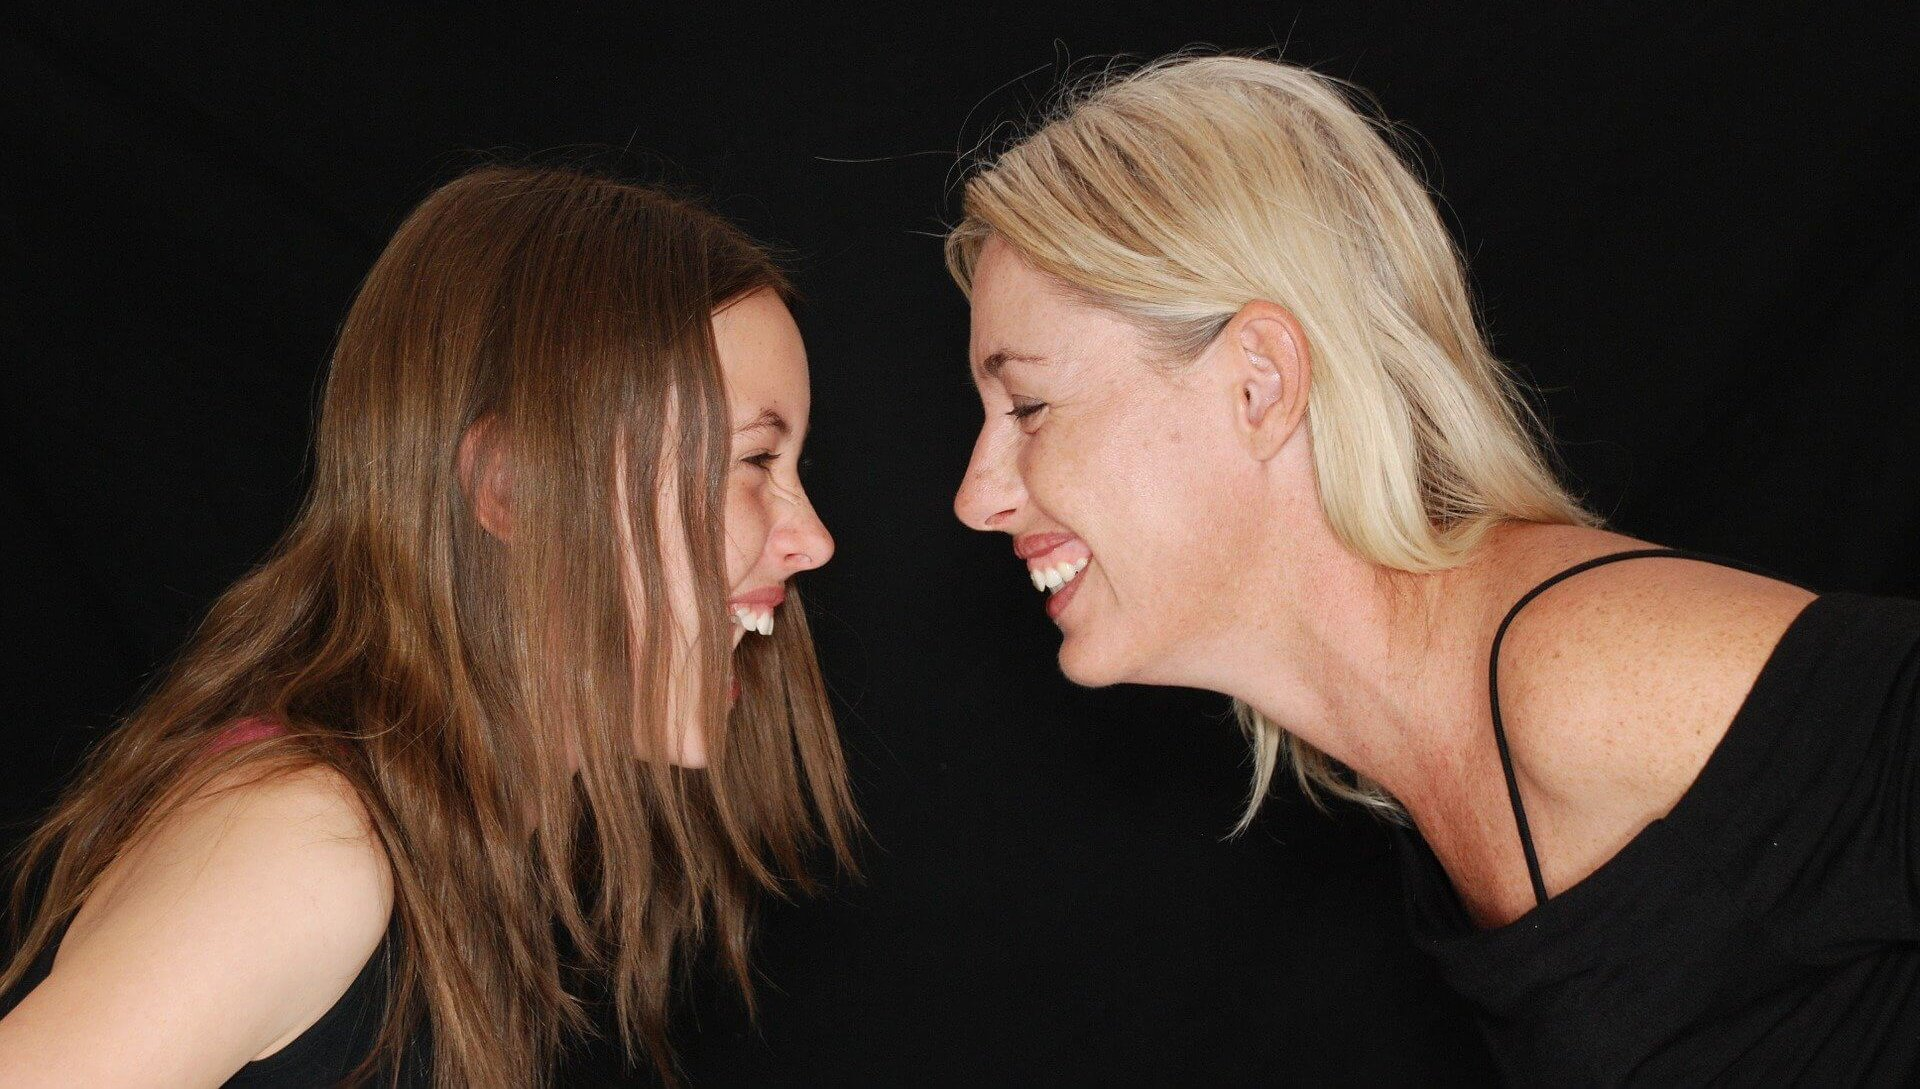 Telling jokes! Families that laugh together survive isolation together